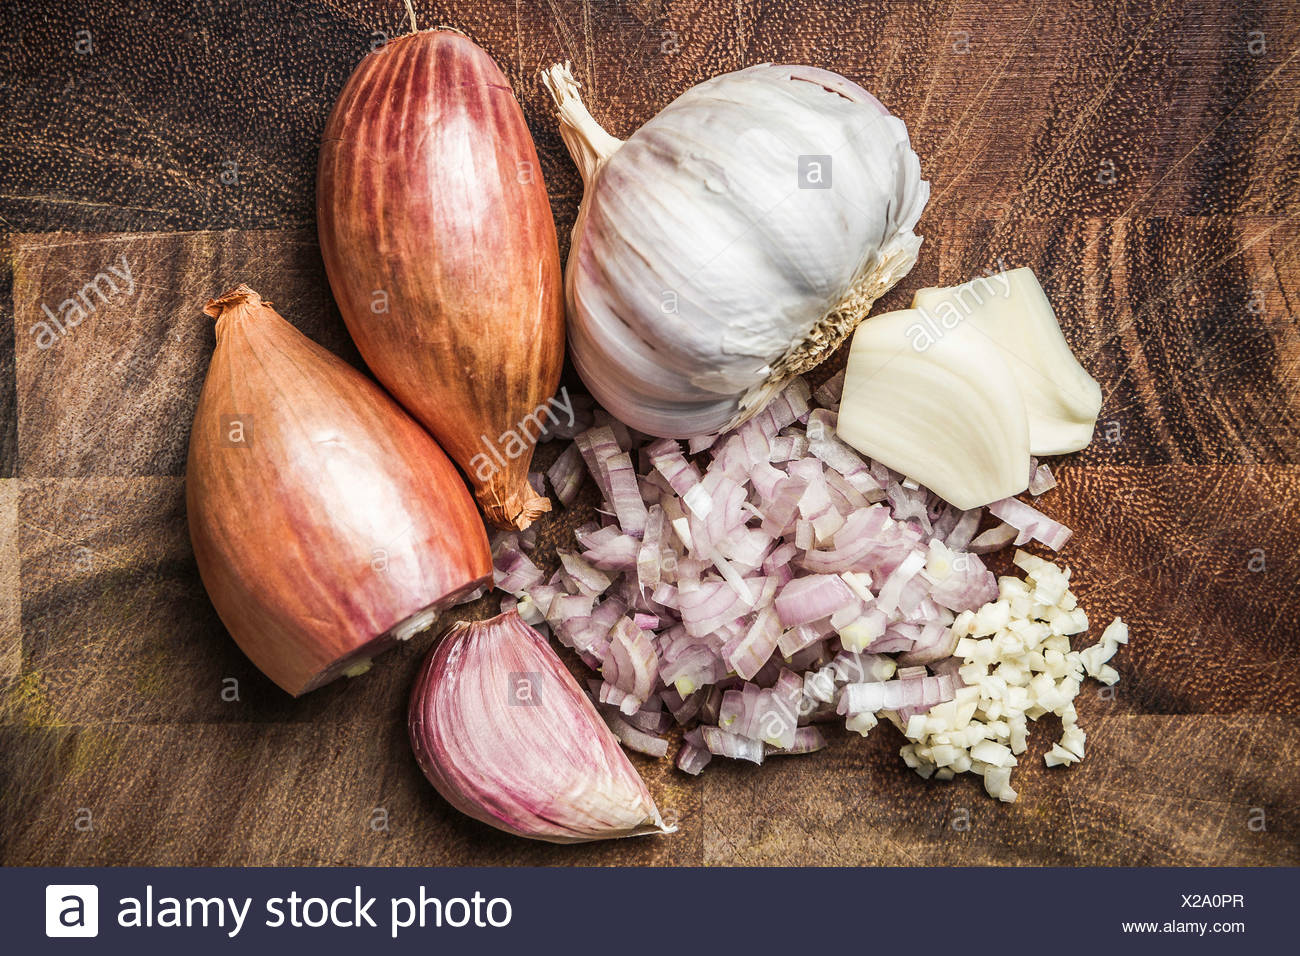 Ingredients for making green curry paste - onion, garlic - Stock Image